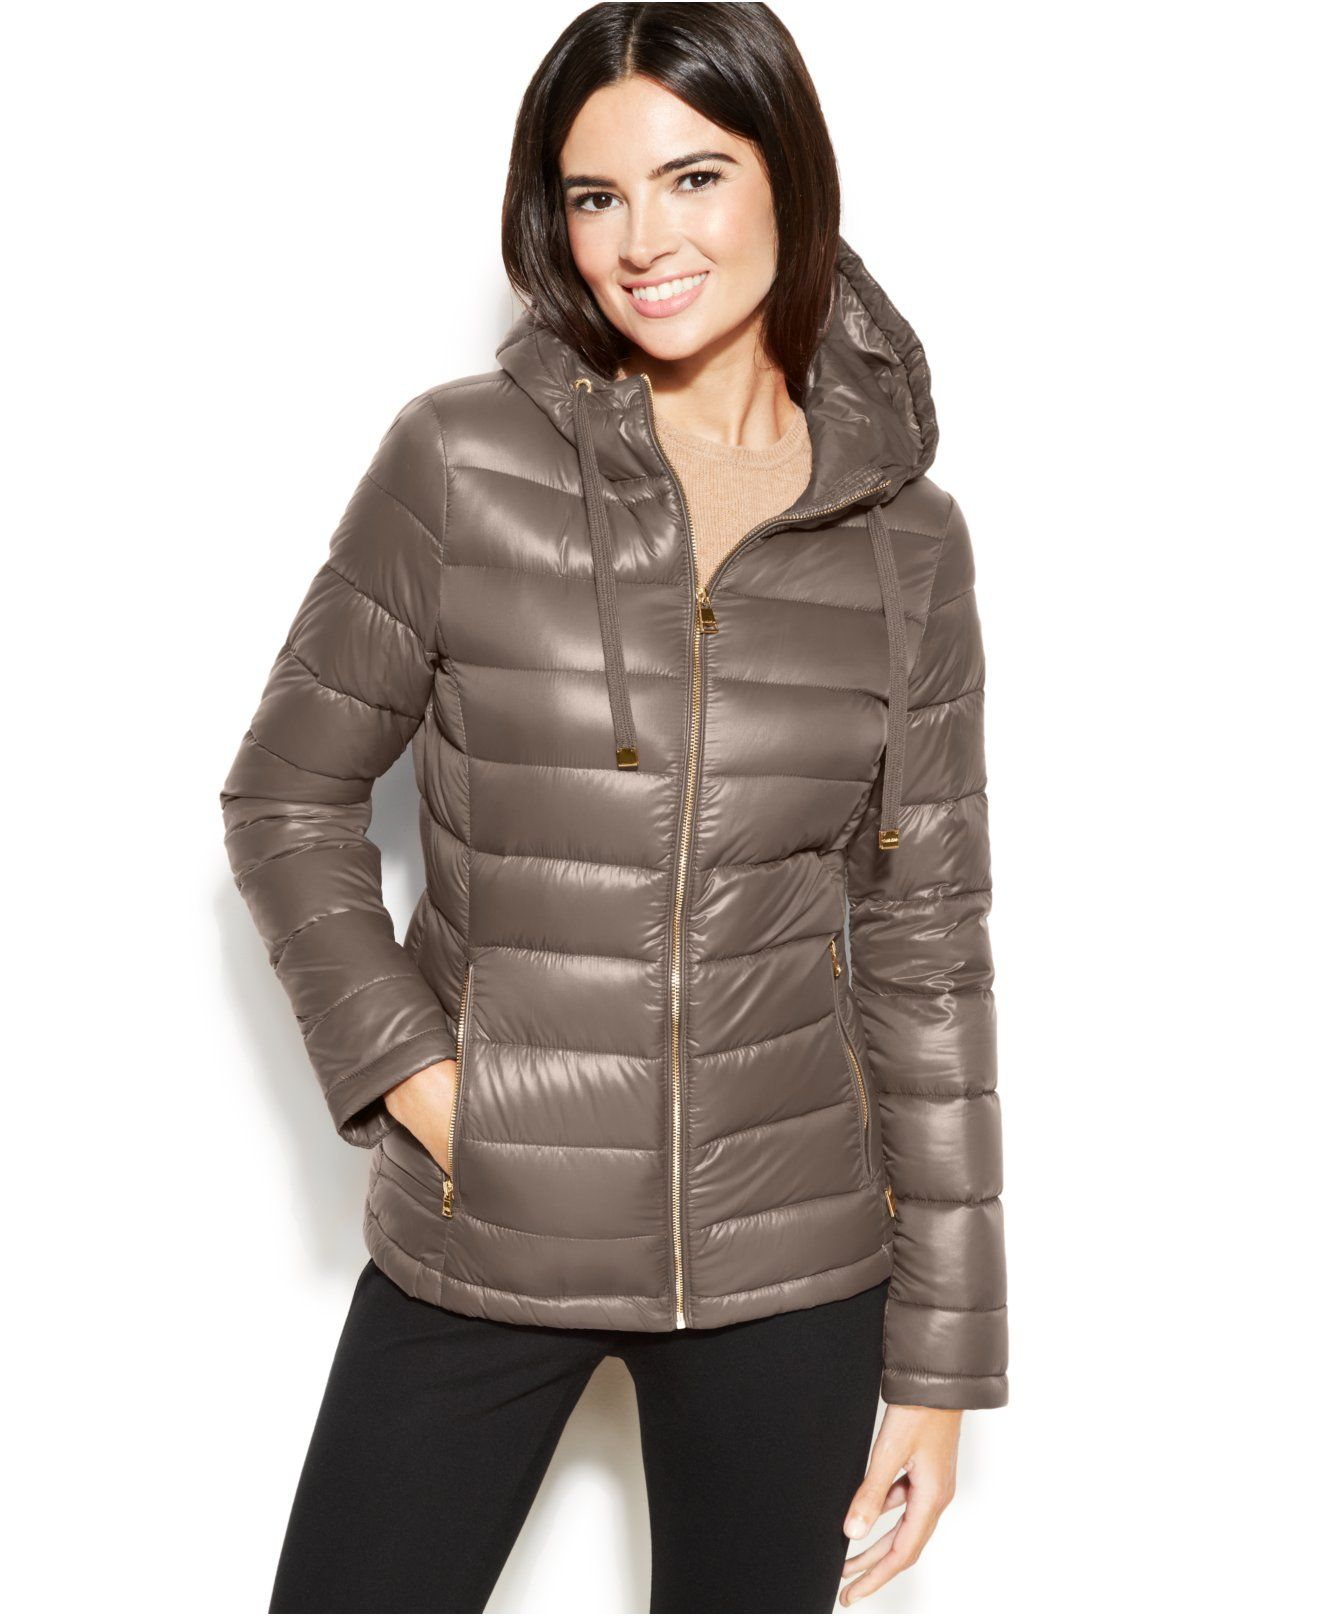 4ad2484d7a74 Calvin Klein Hooded Quilted Packable Down Puffer Coat - Coats - Women -  Macy's $84